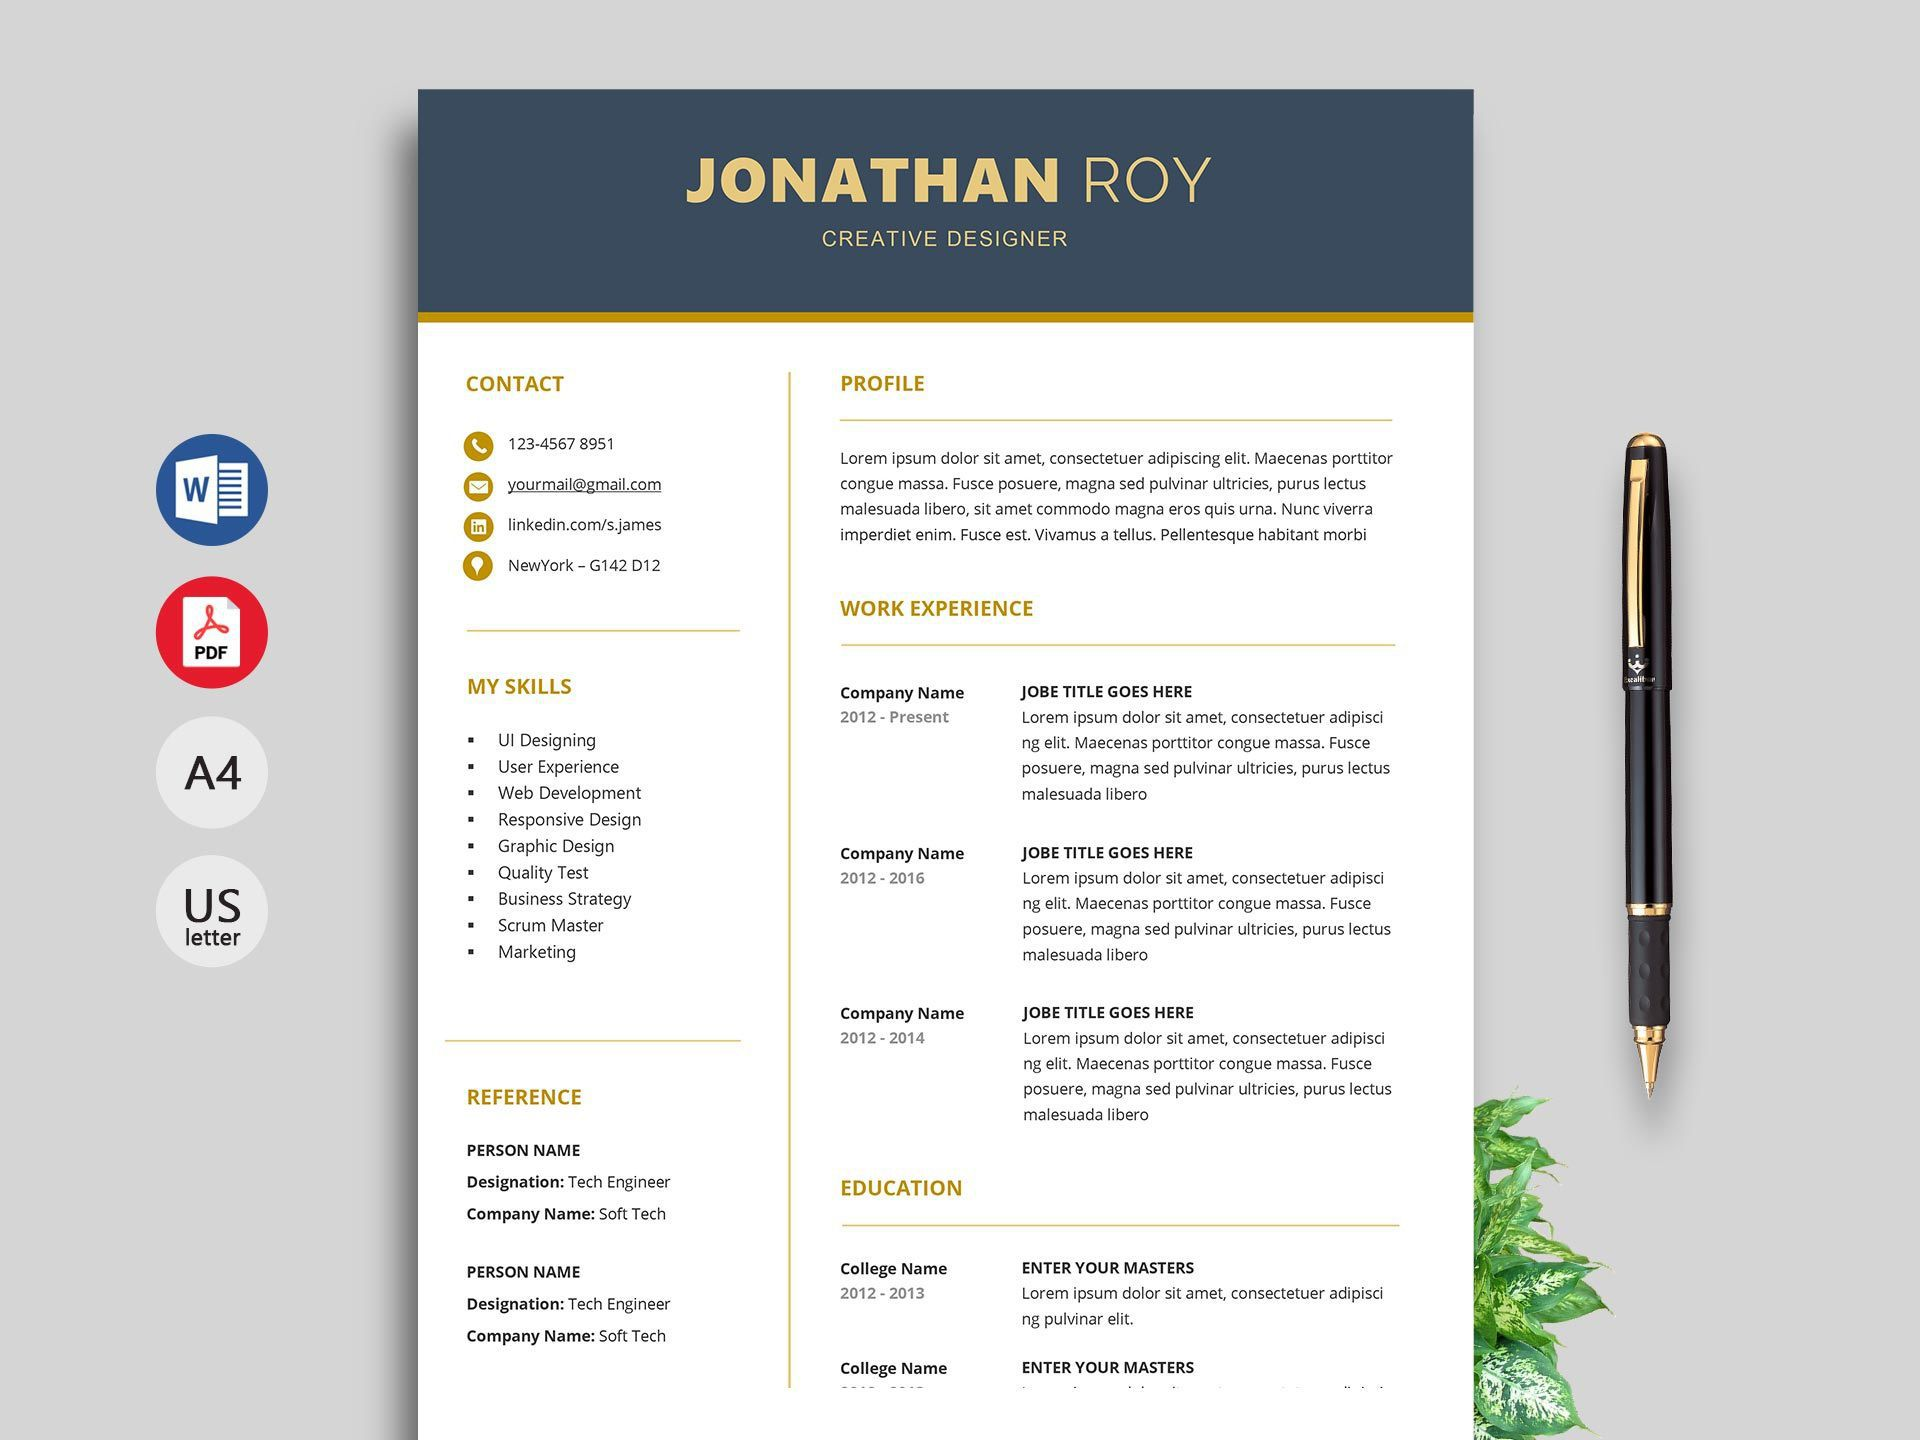 005 Shocking Resume Format Example Free Download High Definition Full